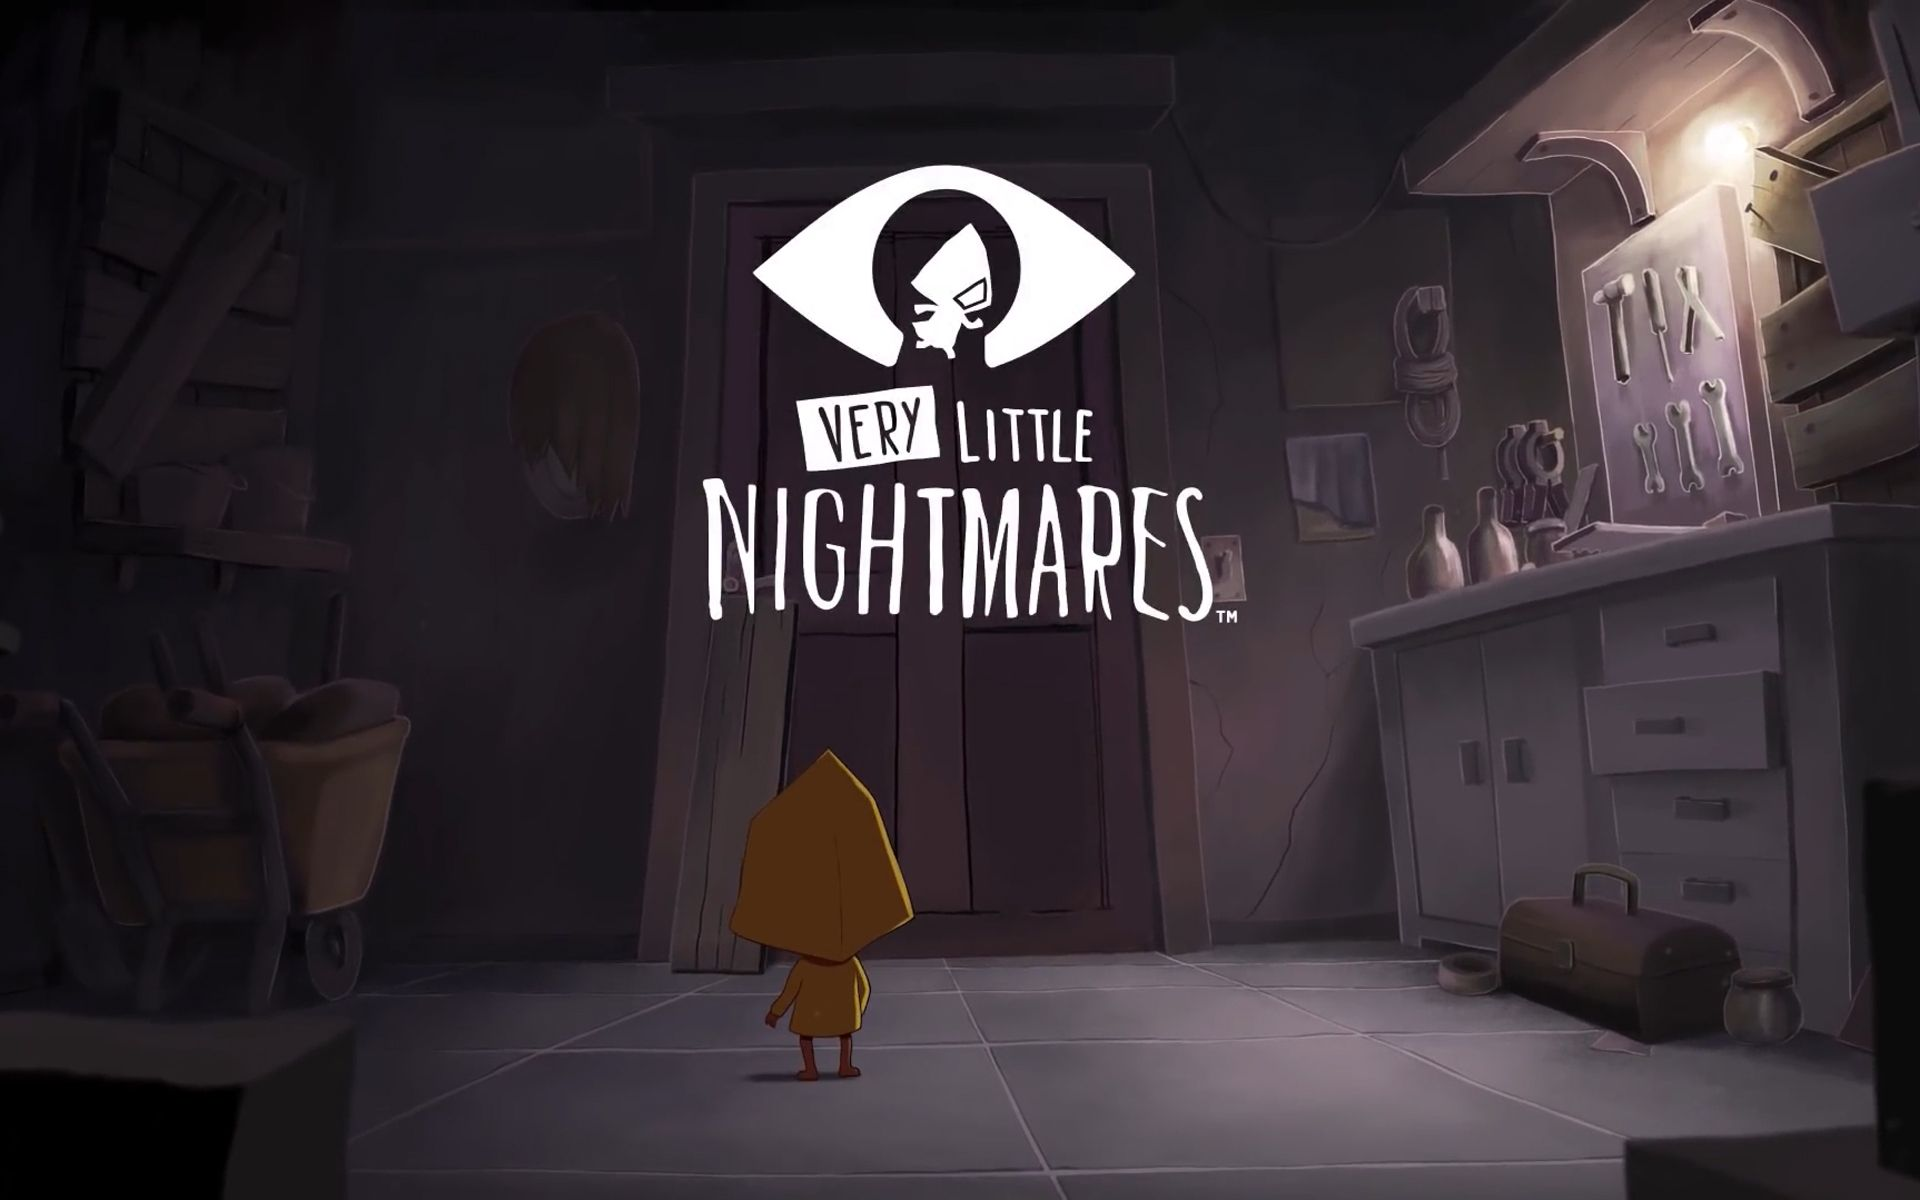 【北寒叔叔】 Six与黄色雨衣 - Very Little Nightmares(超小梦魇)通关合集